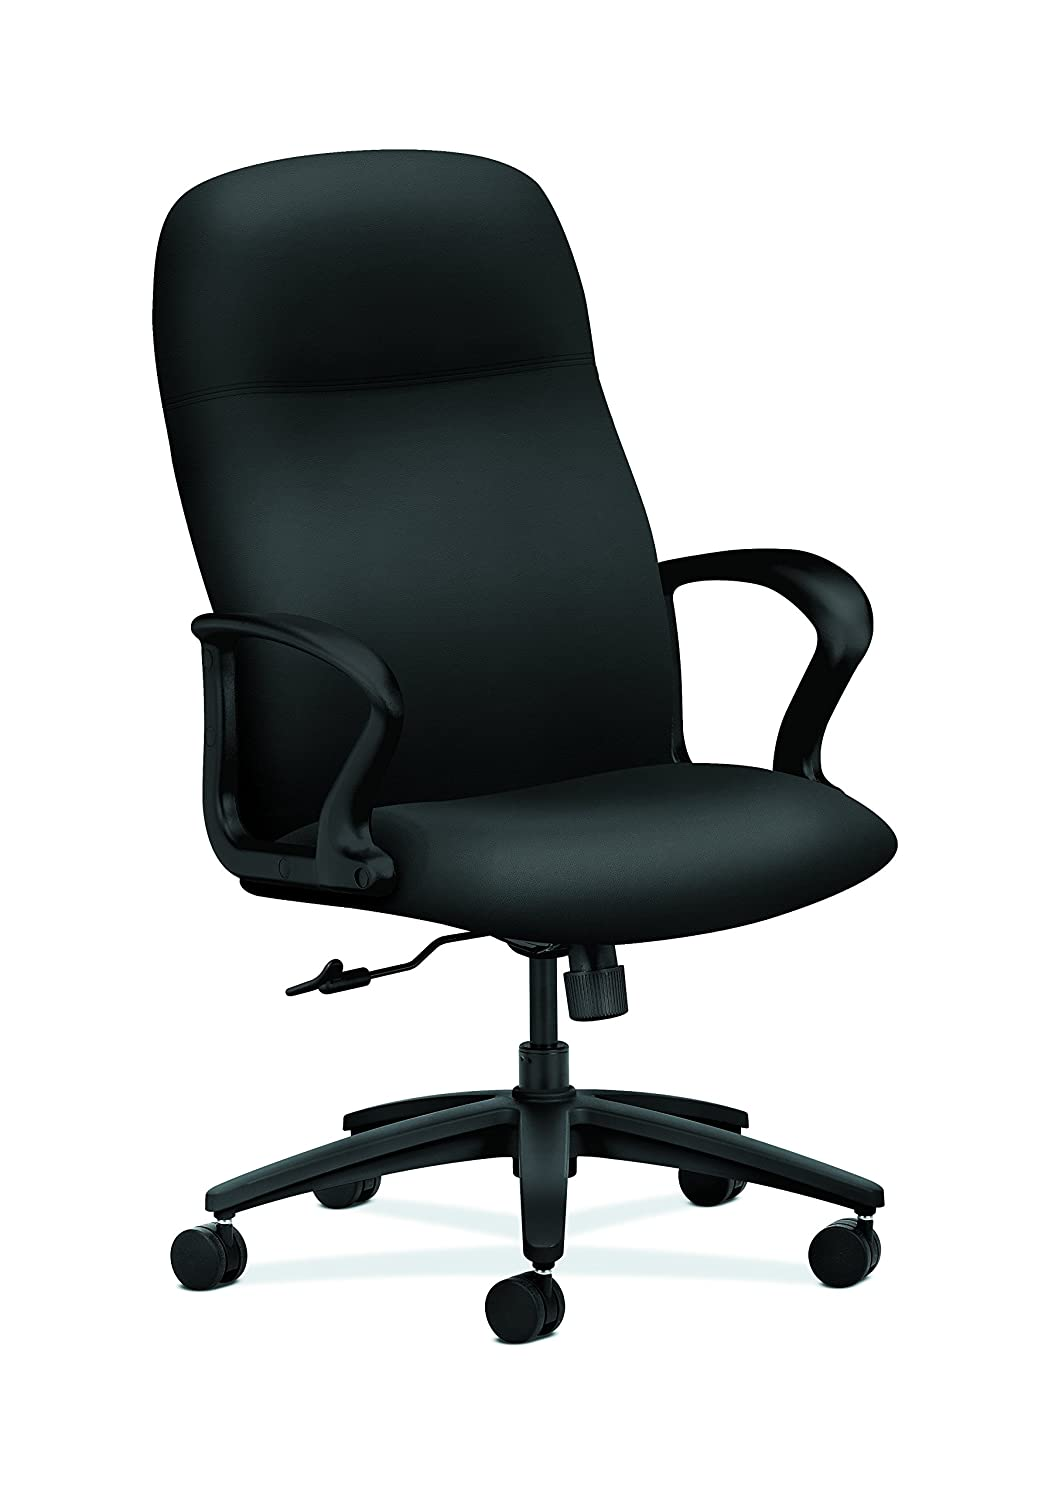 HON Gamut Executive Chair - High-Back Office Chair for Computer Desk (H2071) United Stationers H2071.H.CU10.T